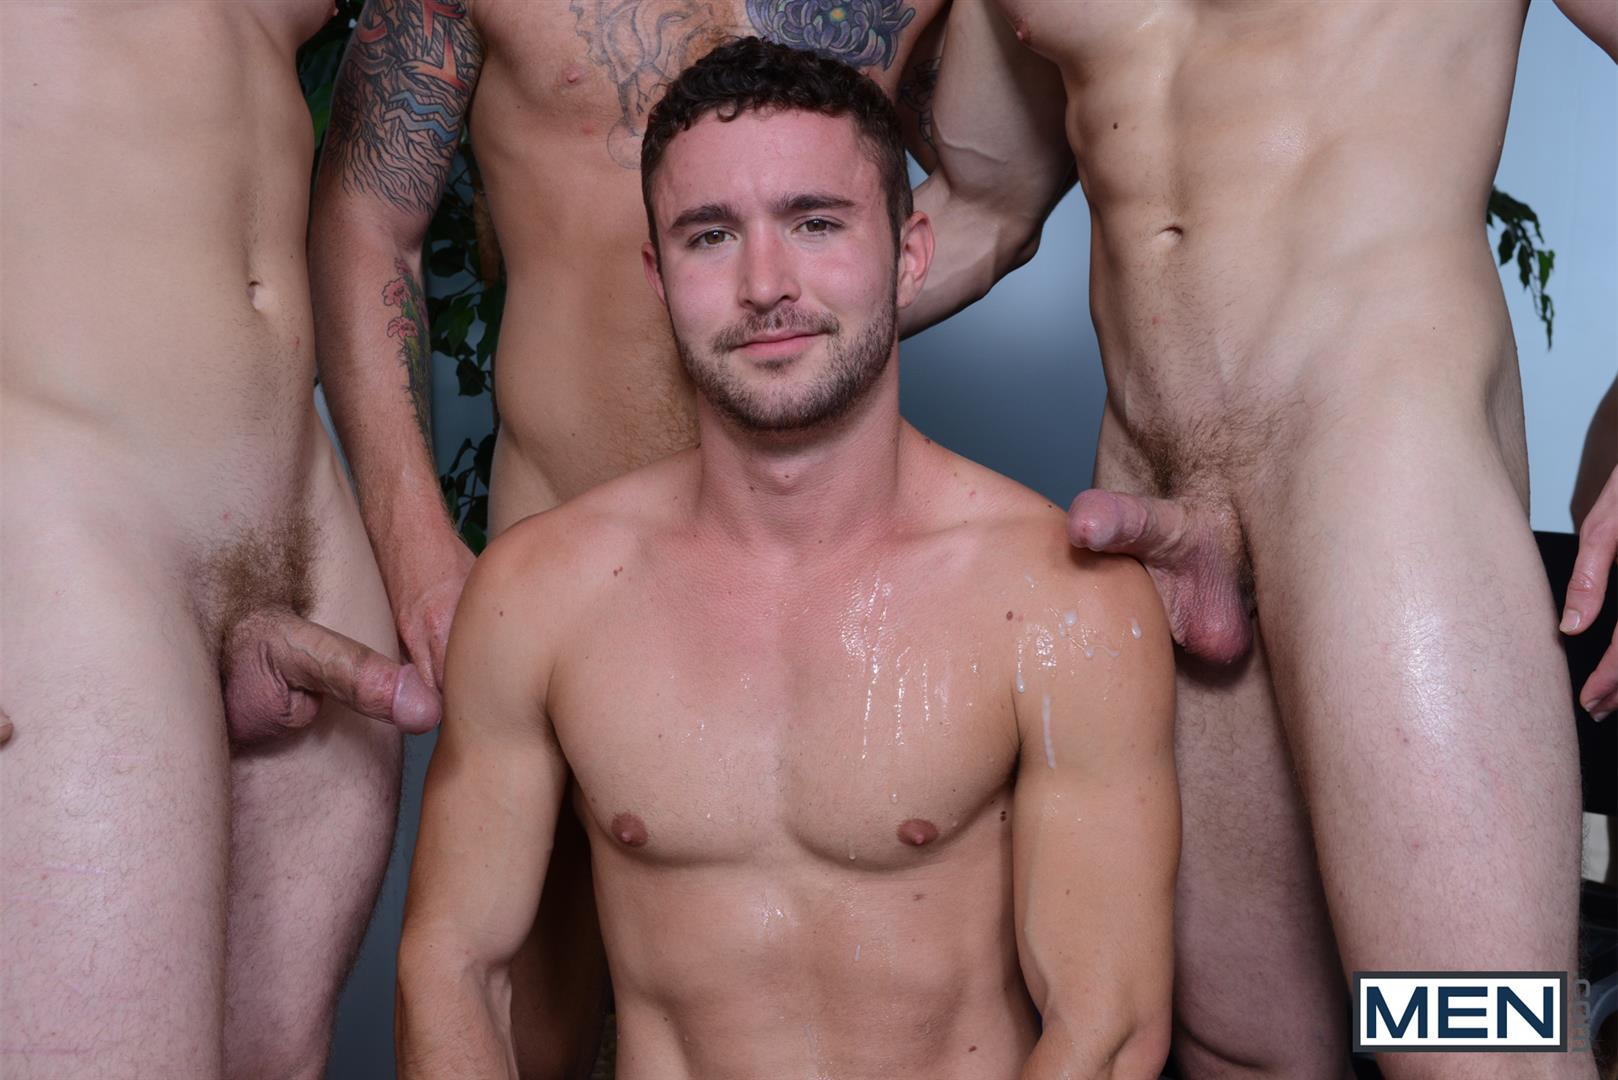 Men Jizz Orgy Swingers Bennett Anthony and Cameron Foster and Colt Rivers and Tom Faulk Fucking Bathroom Amateur Gay Porn 37 Hung Golfing Buddies Fucking In The Bathroom and Clubhouse